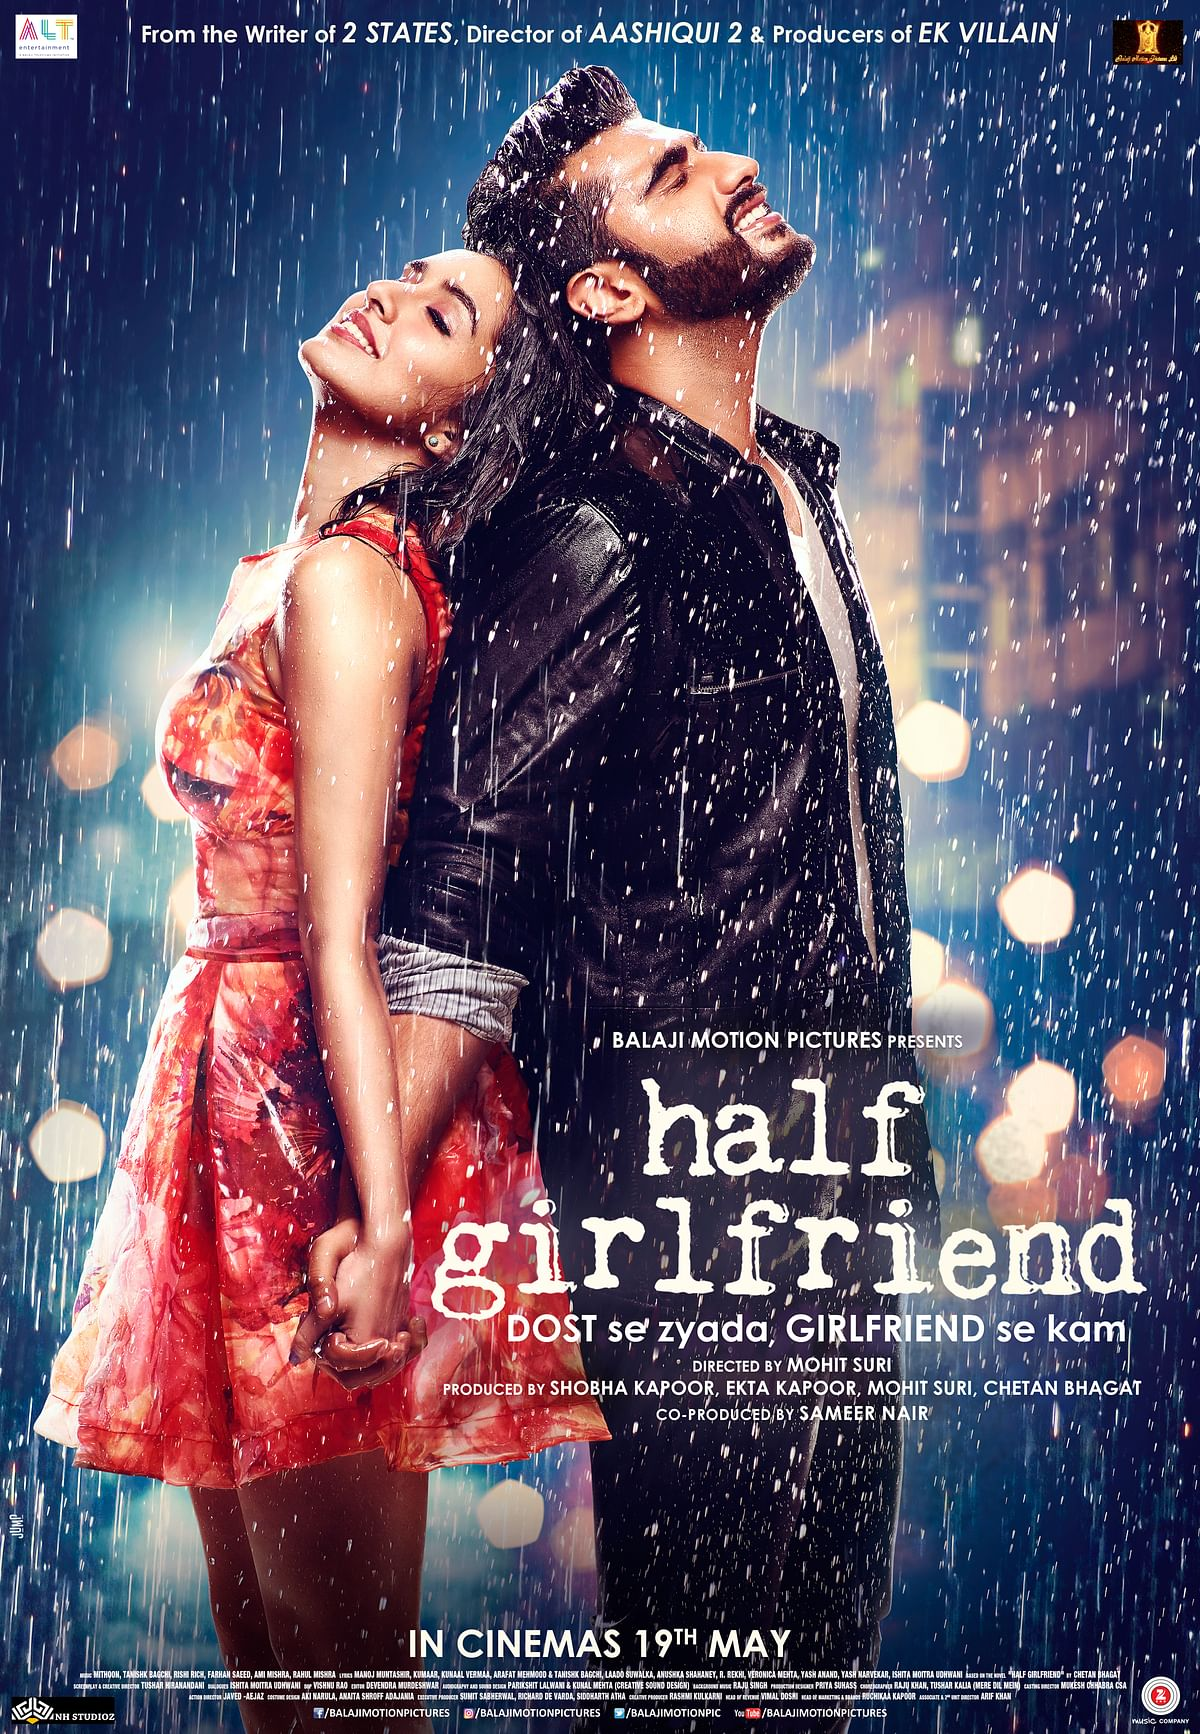 The poster of <i>Half Girlfriend</i>. (Photo courtesy: Balaji Motion Pictures)